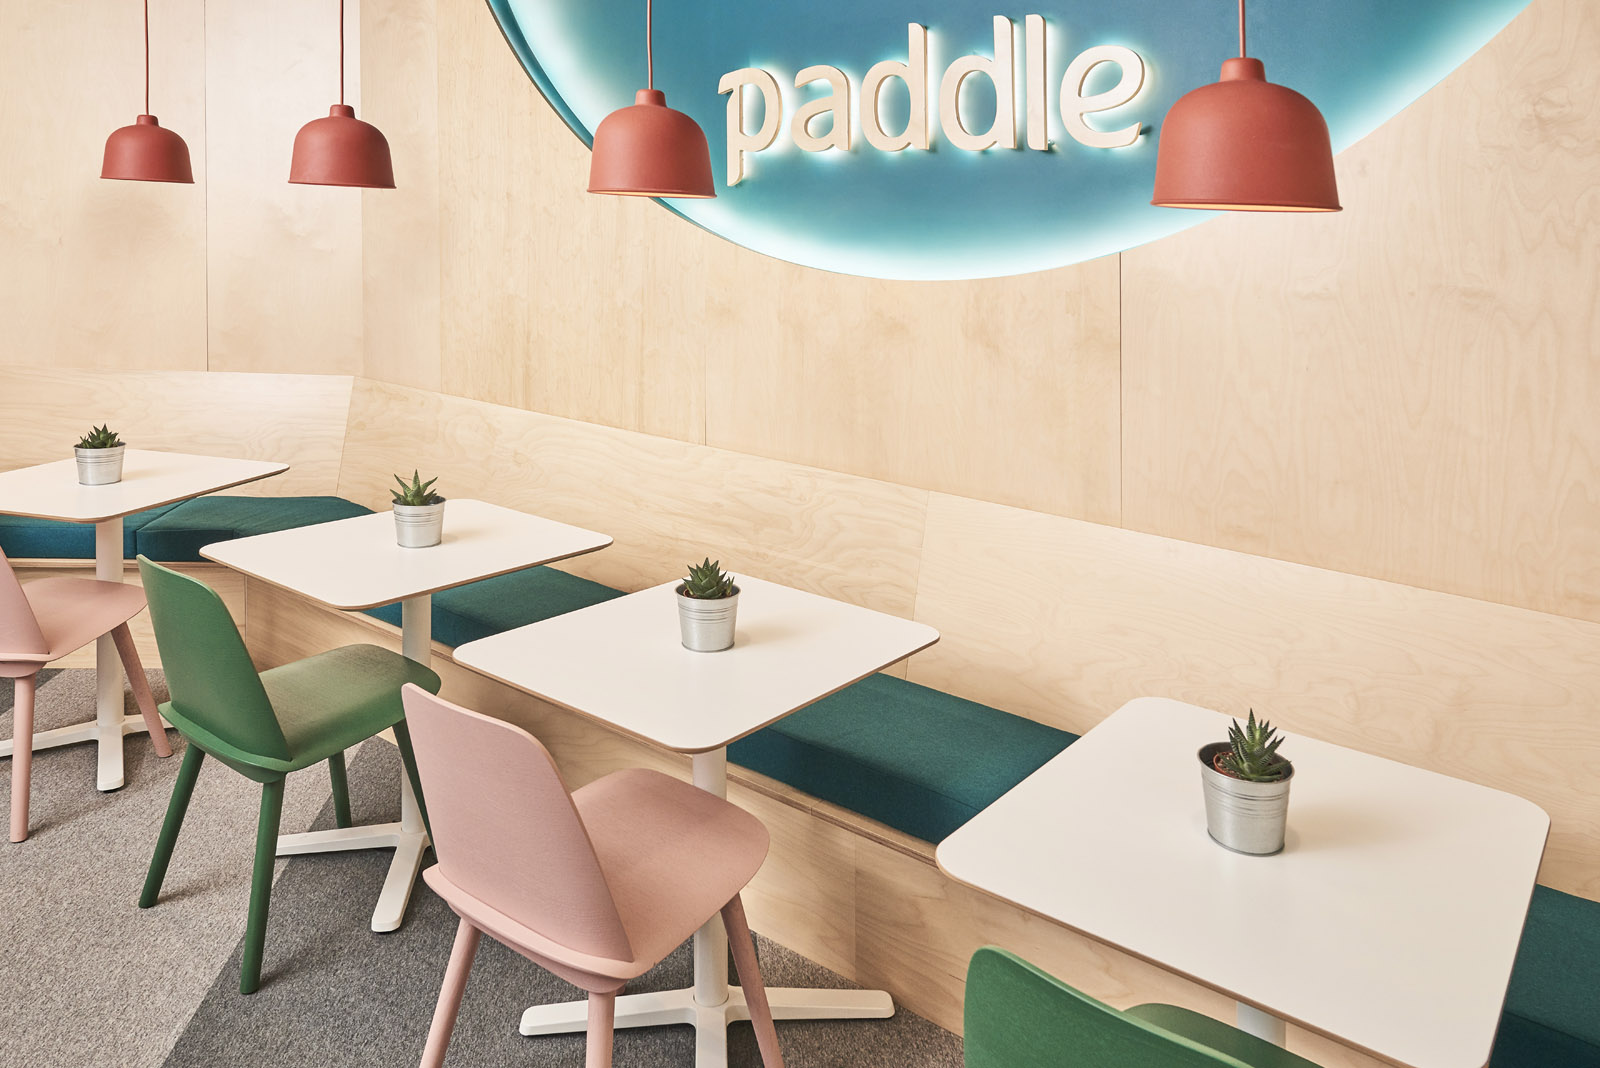 Projects_Office_PADDLE_cafe.jpg